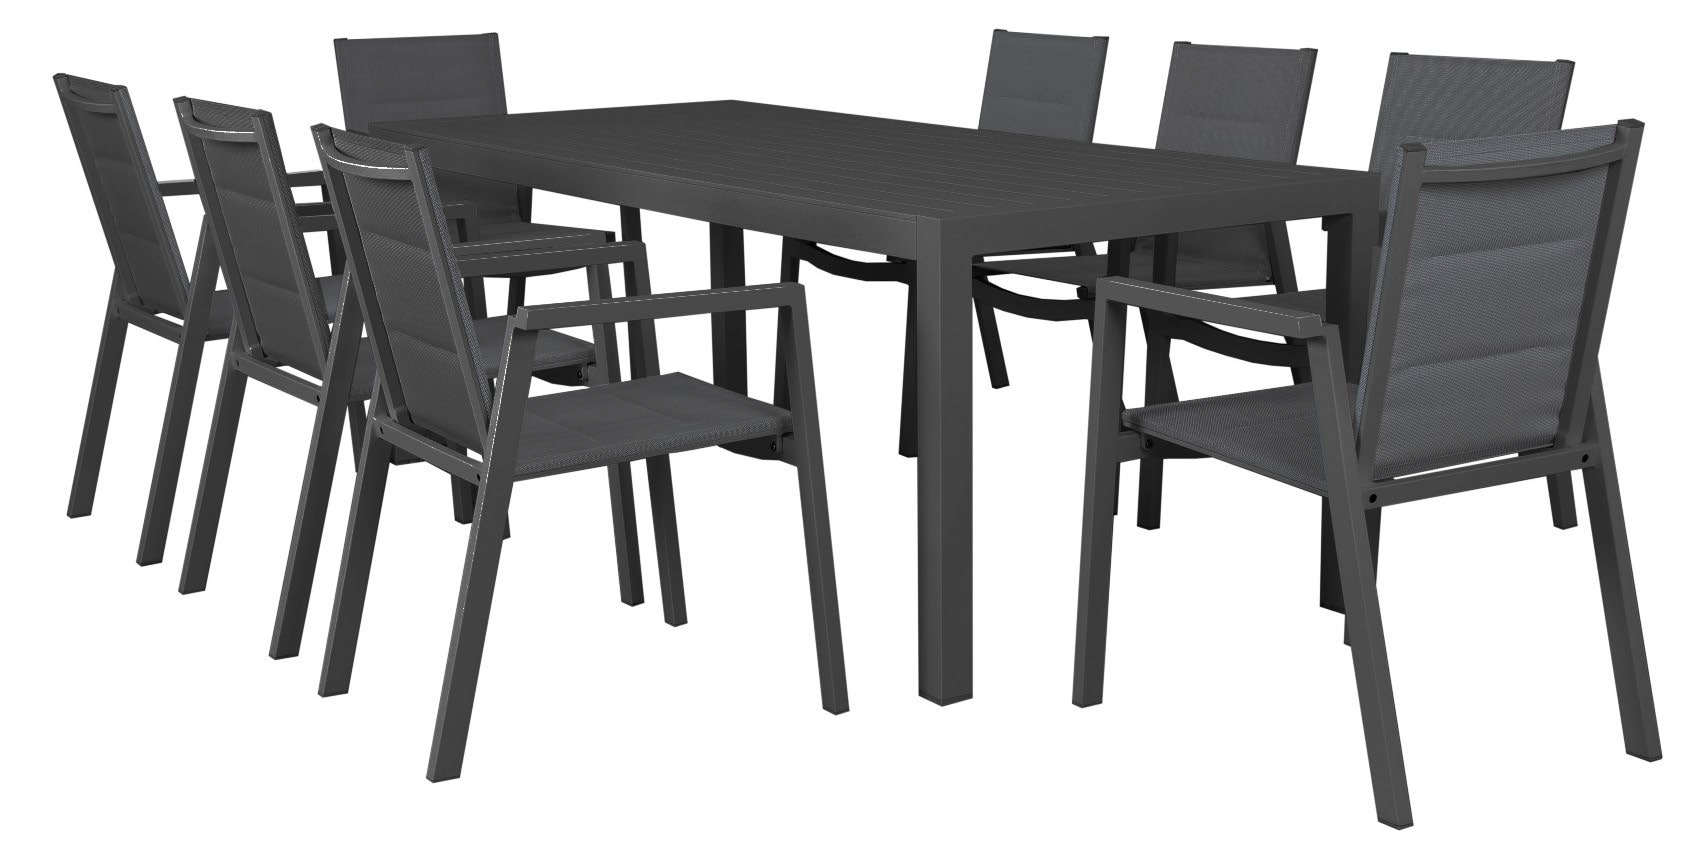 MATZO ALUMINIUM DINING TABLE 2100MM WITH 8 PADDED CHAIRS